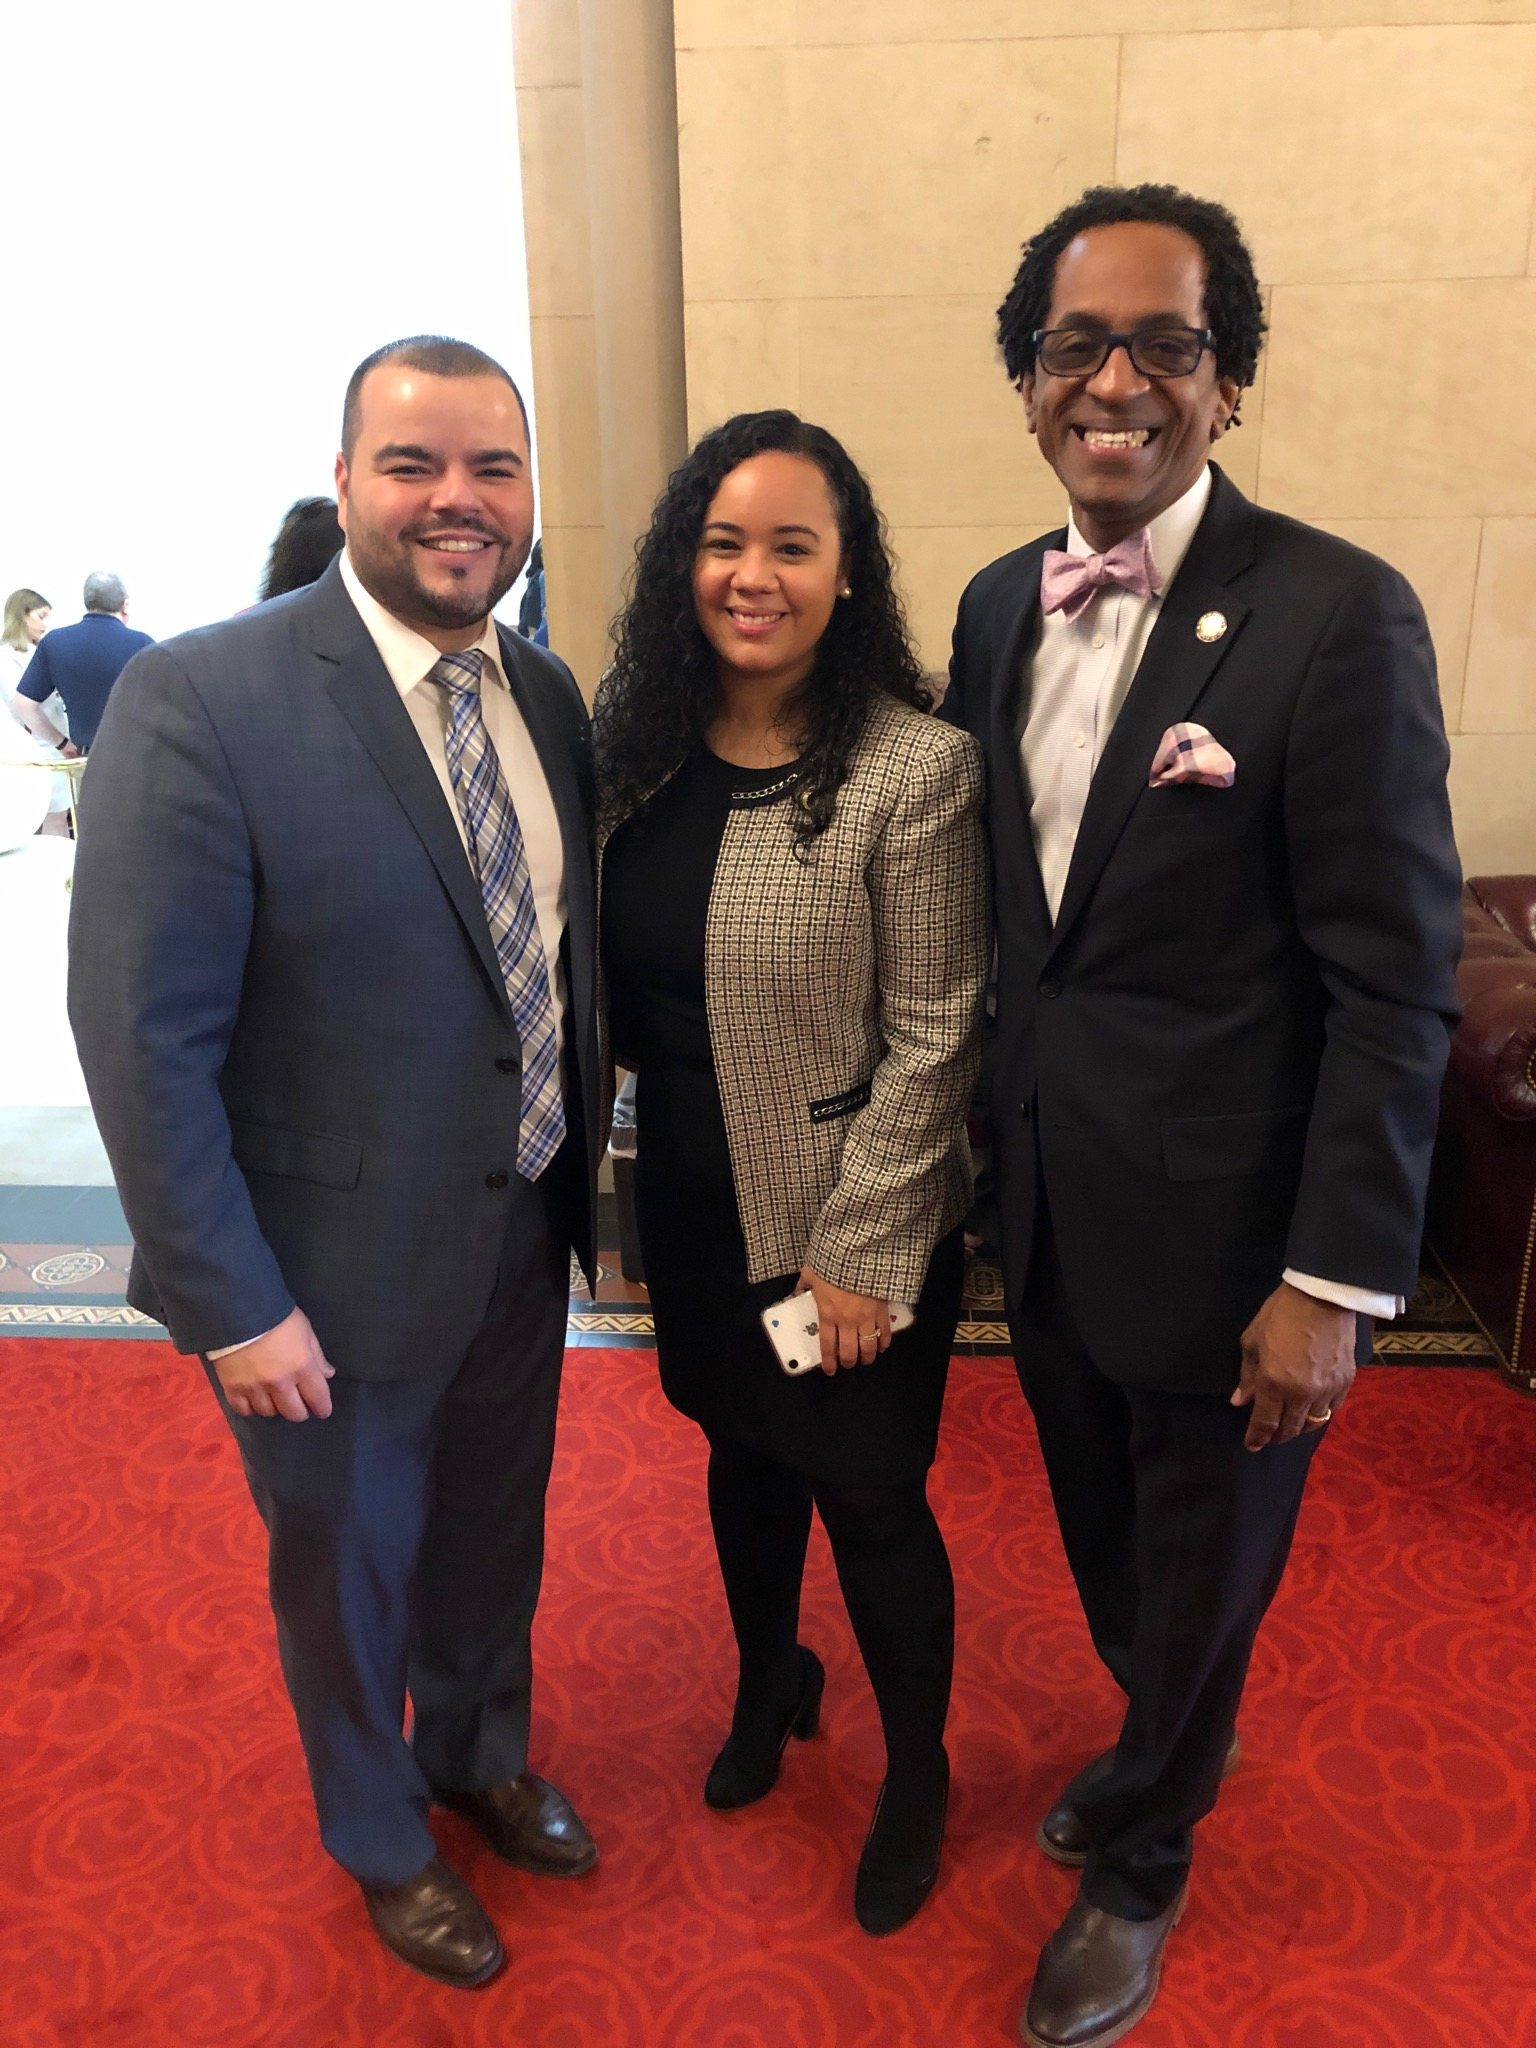 On January 23, 2019, Assemblymember Al Taylor helped to pass the Jose Peralta New York State DREAM Act with Assemblymember Carmen de la Rosa and Assemblymember Marcos Crespo.